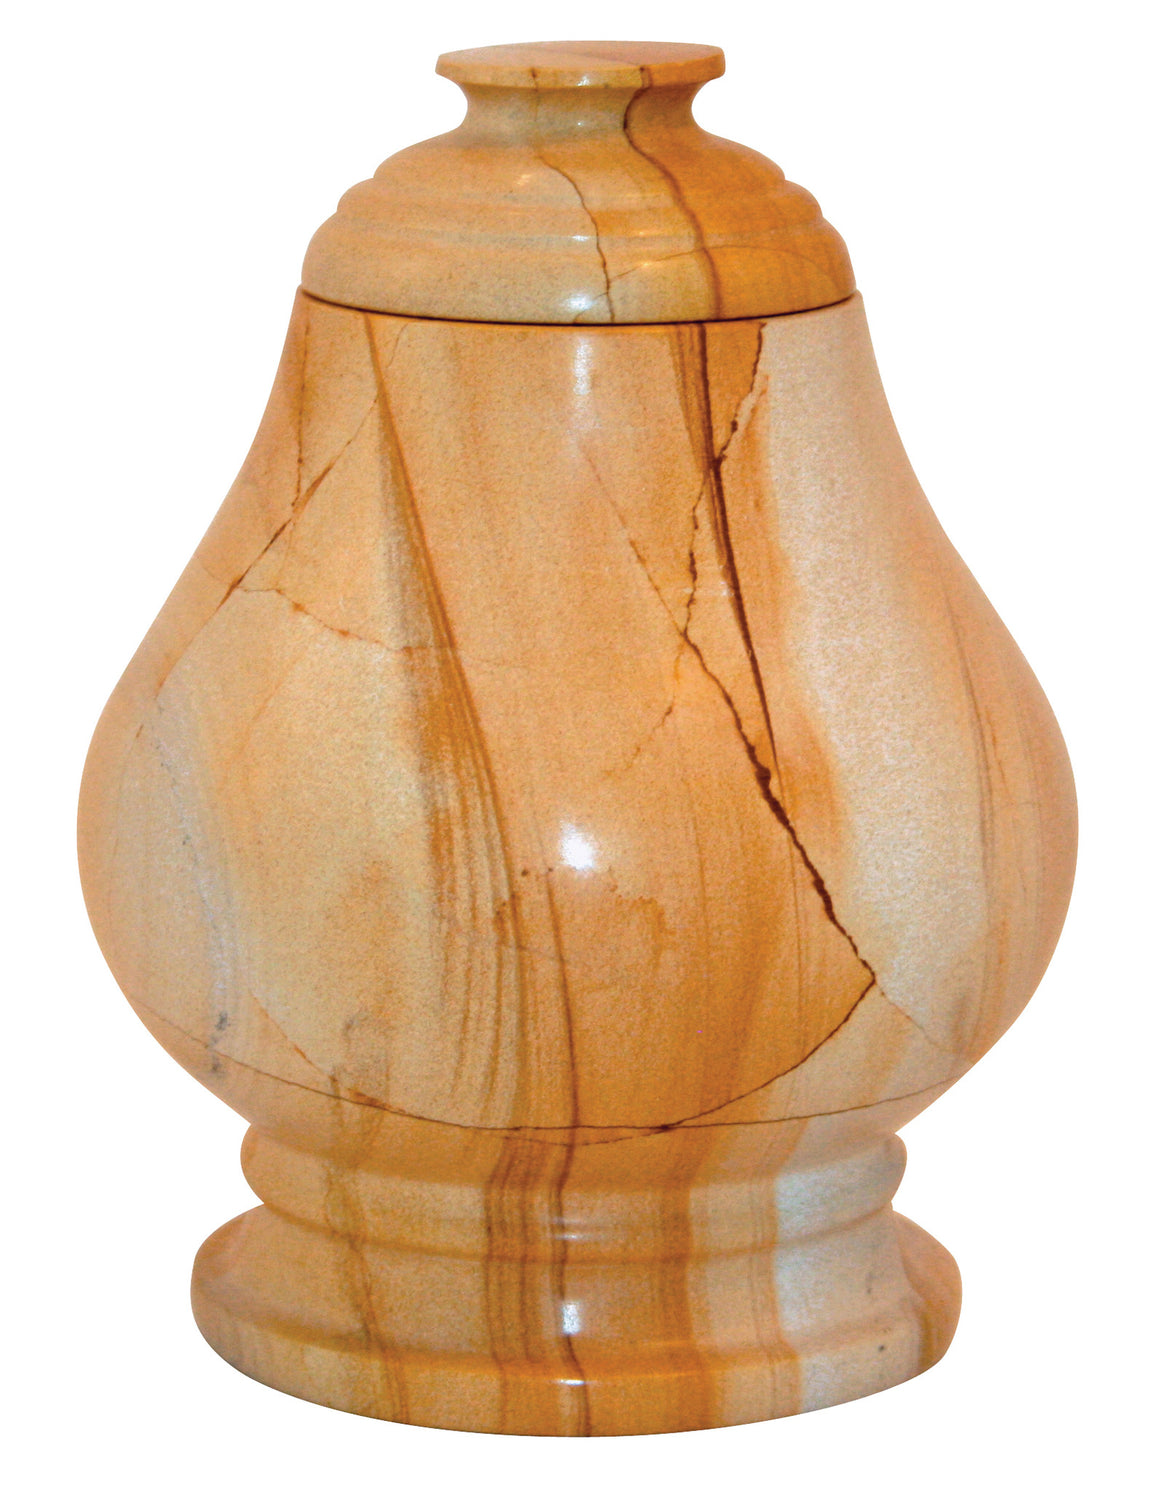 Equator Teak Keepsake